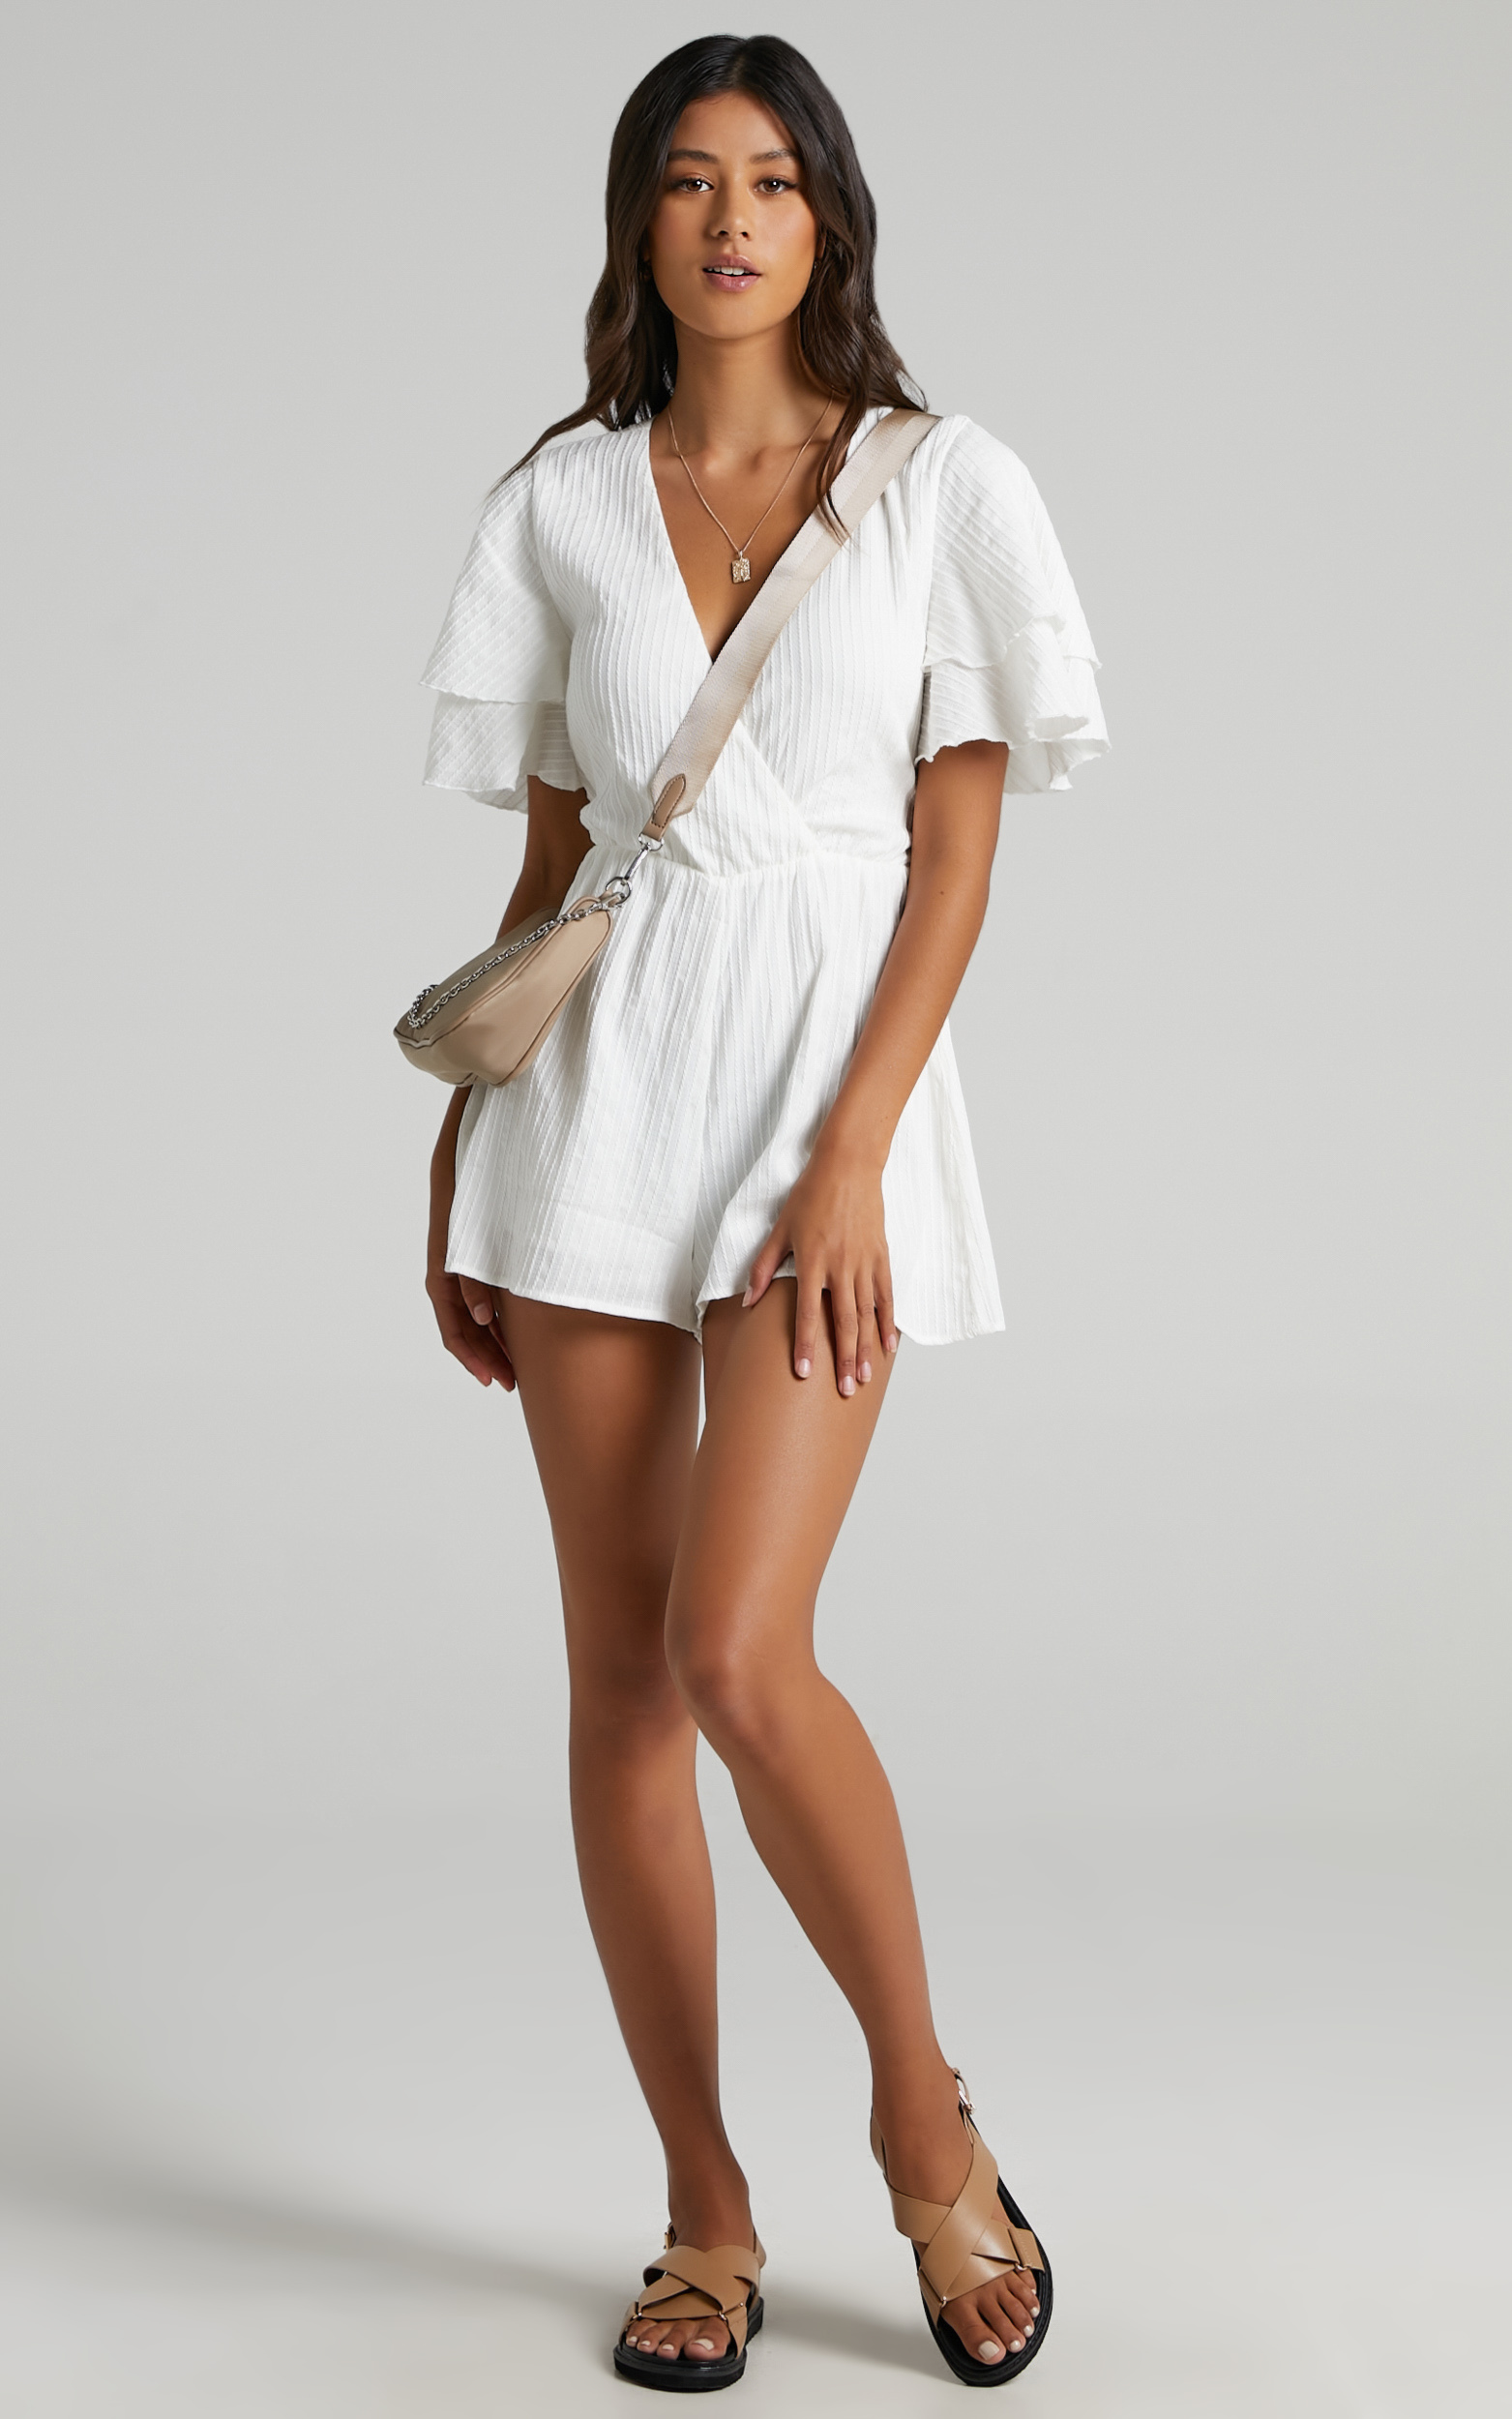 Run Away Girl Playsuit in White - 20, WHT2, hi-res image number null